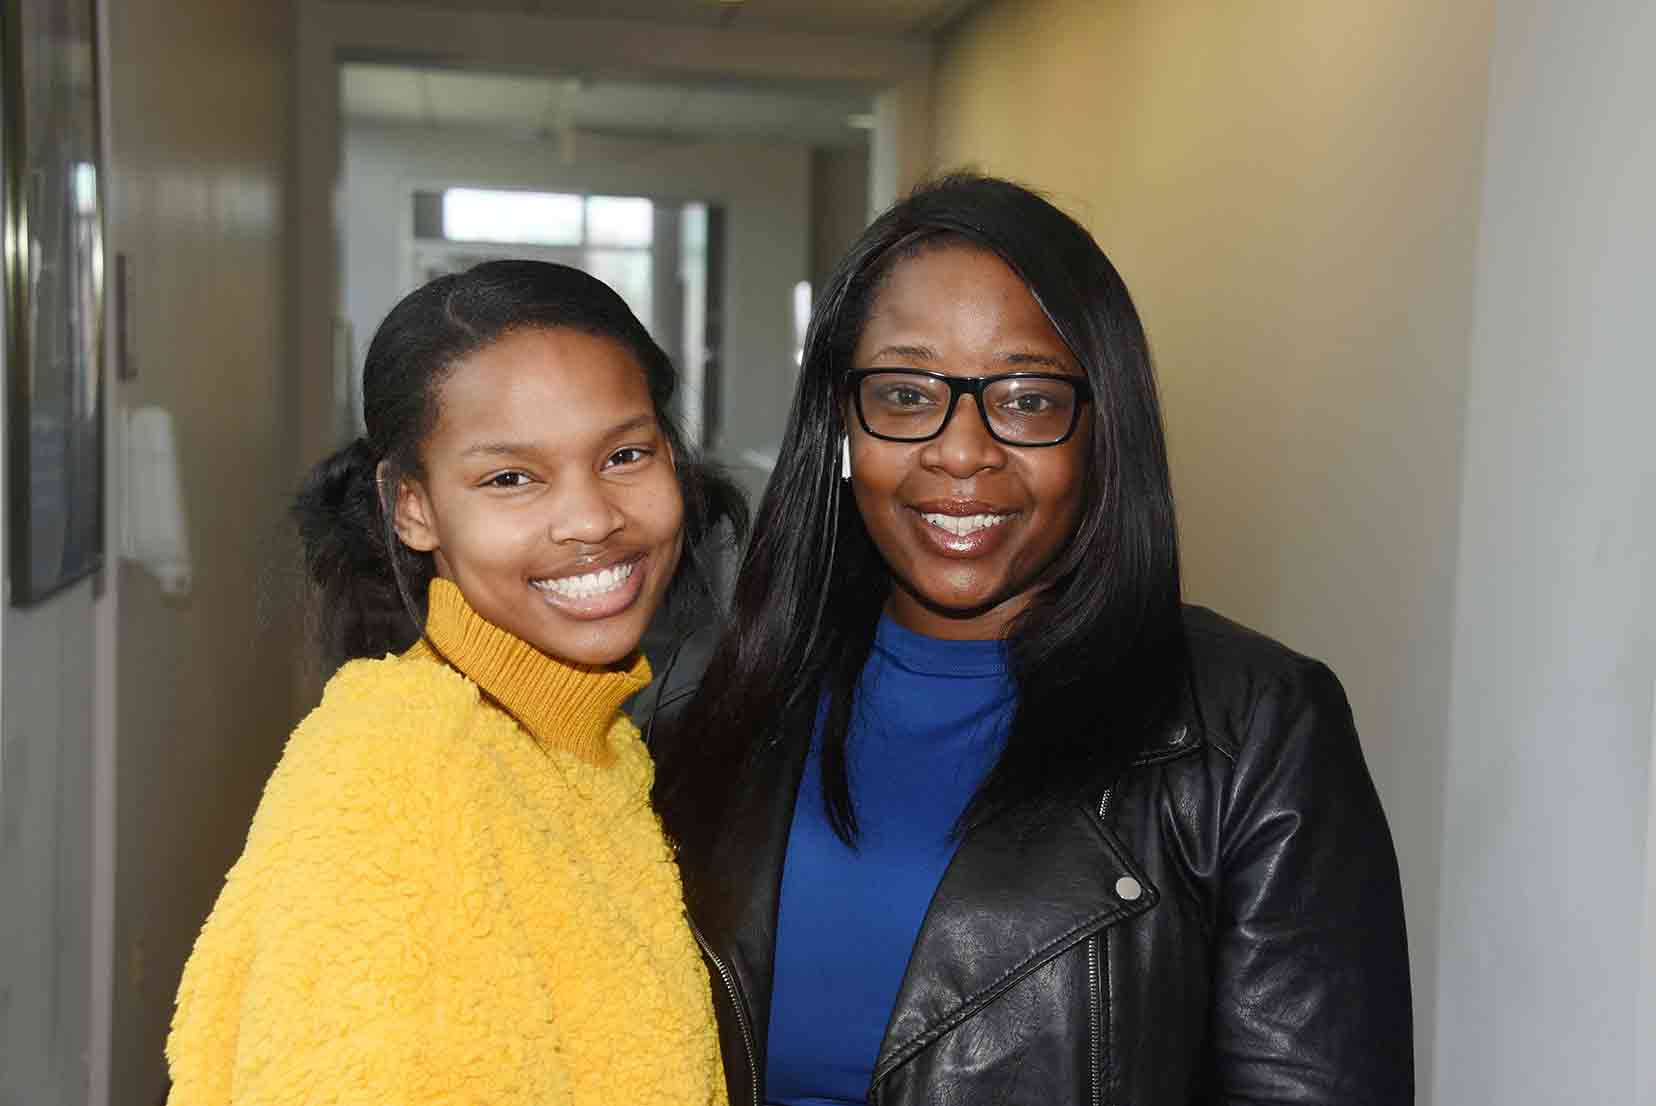 (L-r) Nia Allen. freshman, and Lindsey Hyppolite, Ph.D. candidate, both in Chemistry, are part of a team competing in a Sickle Cell Disease awareness competition conducted by the National Institute of Health. Not pictured: Joshua Patterson.